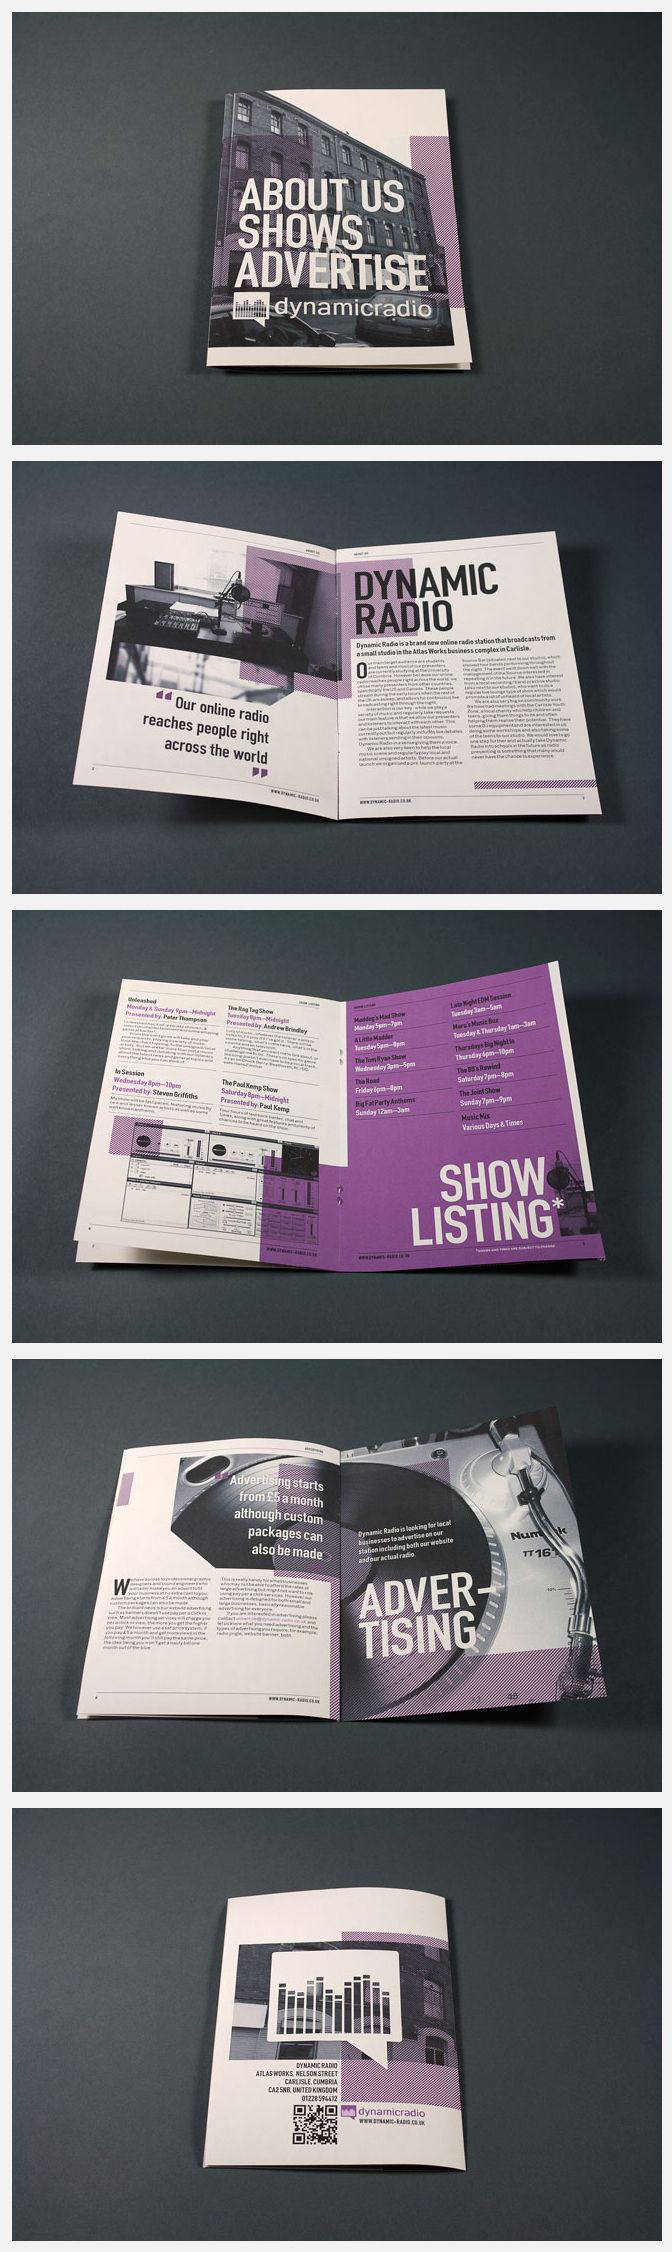 Print Design: Dynamic Radio Advertising Booklet #layout #publication #booklet                                                                                                                                                     More